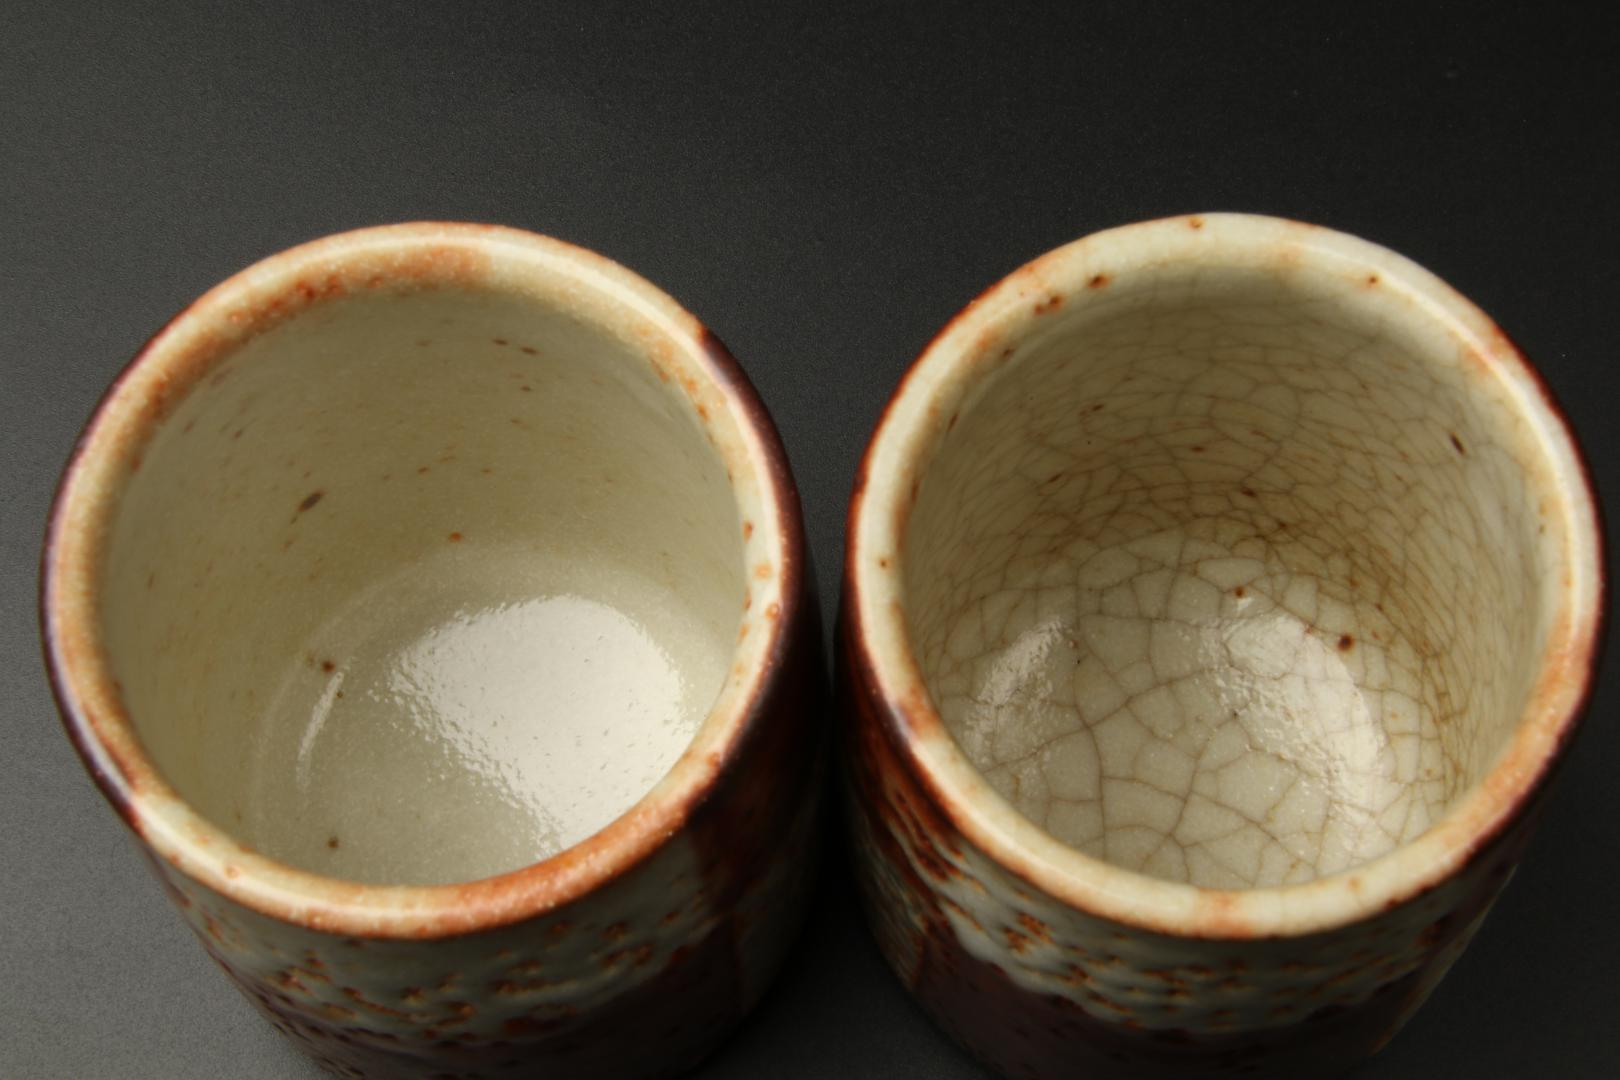 Image of cups without Kannyu and with Kannyu